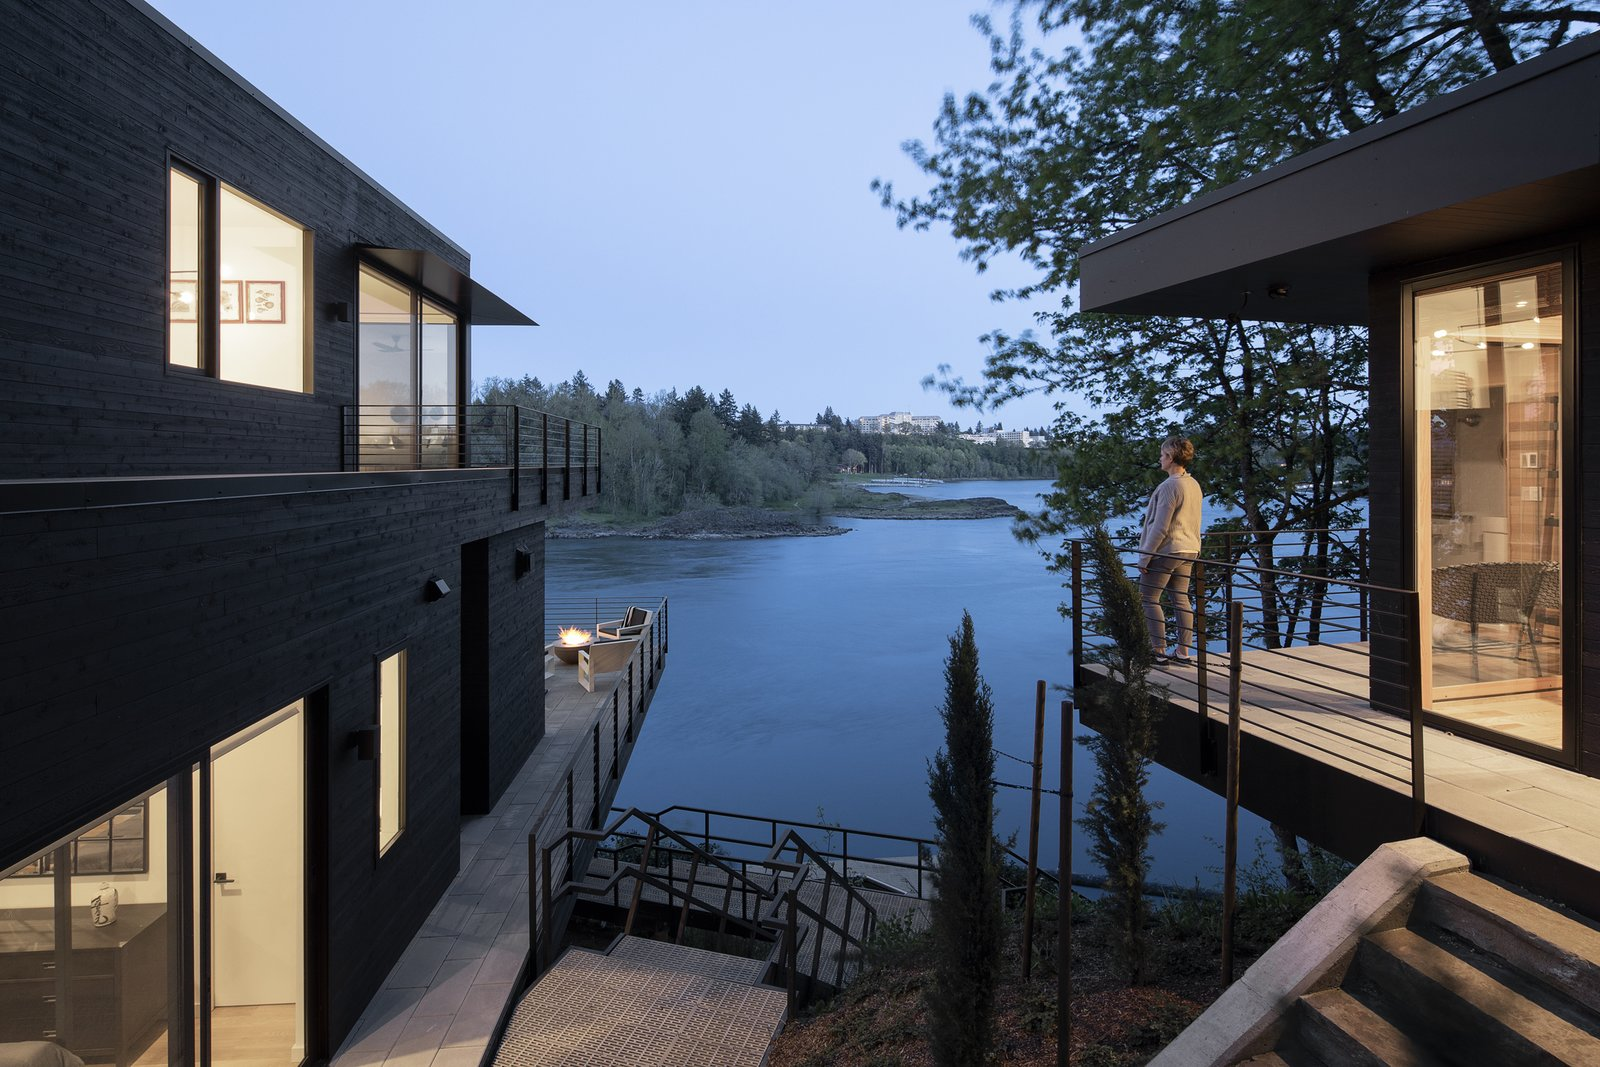 To the right is the small guest cabin perched on the cliff. To the left is the main house cantilevered over the river.  Riverwood